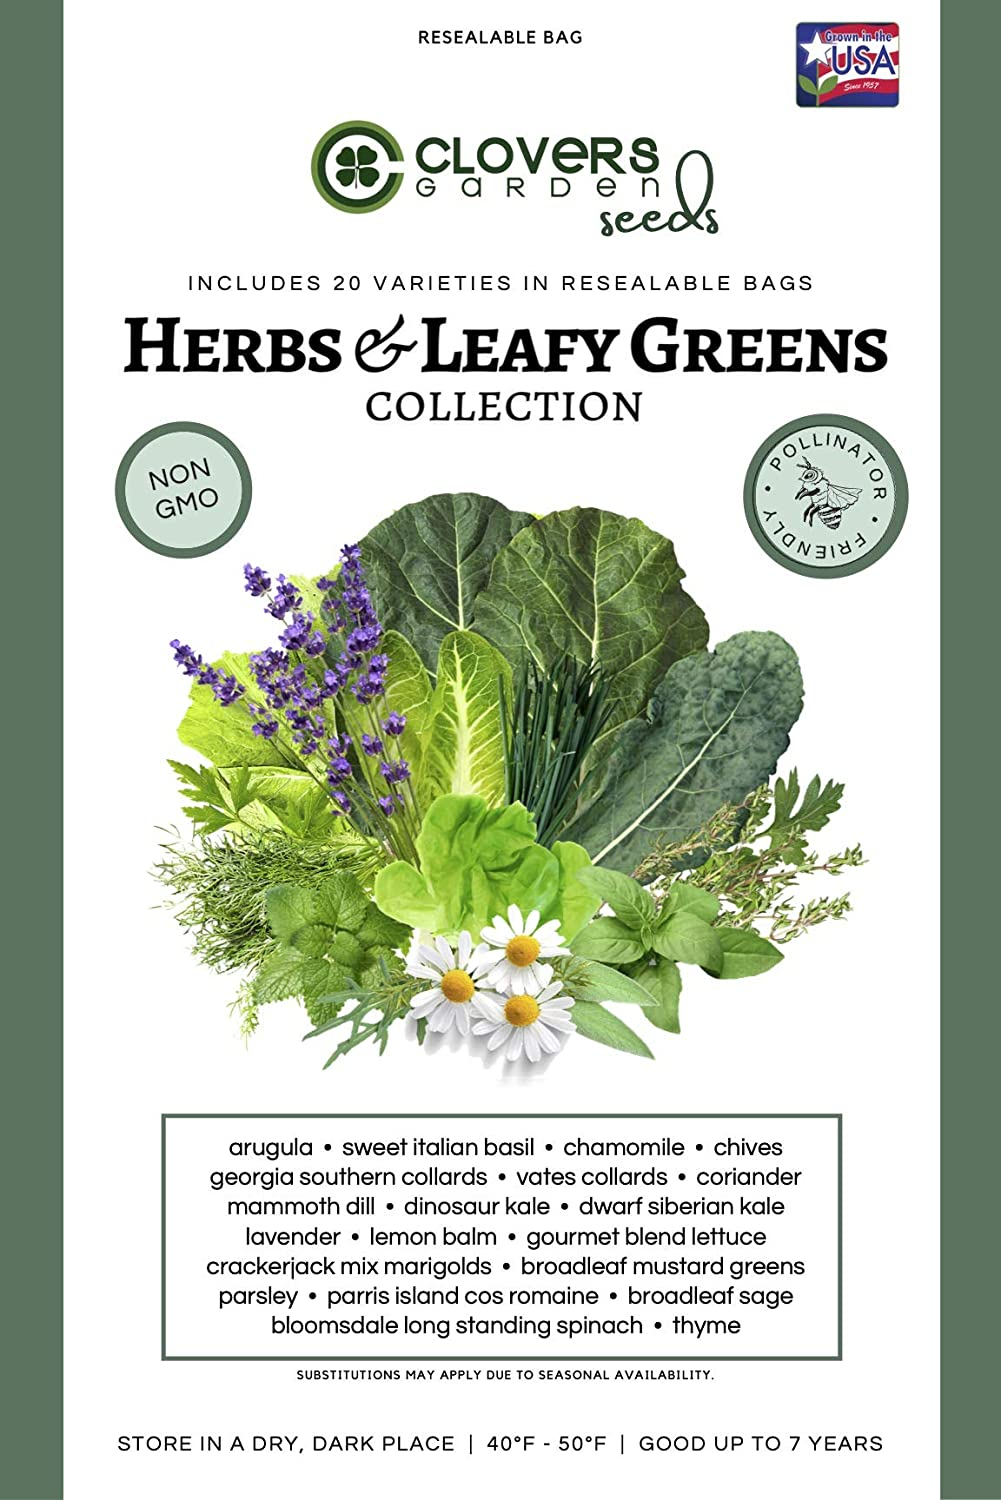 Clovers Garden Herbs & Leafy Greens Vegetable Seed Kit – 20 Varieties, 100% Non GMO Open Pollinated Heirloom Herb, Lettuce, Cilantro Seed Vault for Planting – USA Grown – for Home or Survival Garden